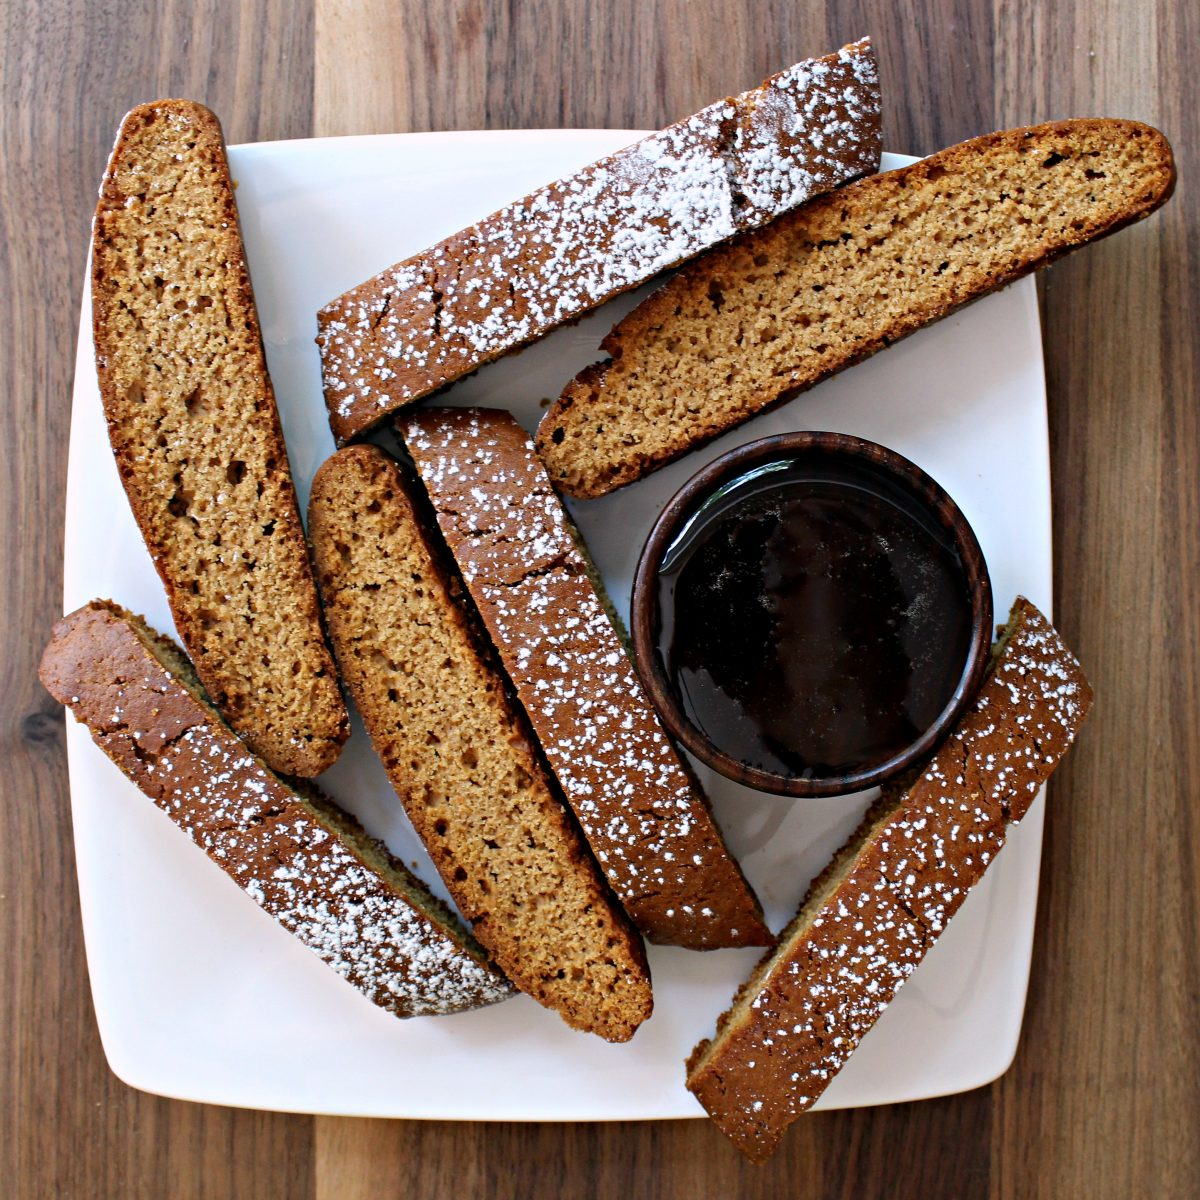 Biscotti on white plate with a bowl of honey.